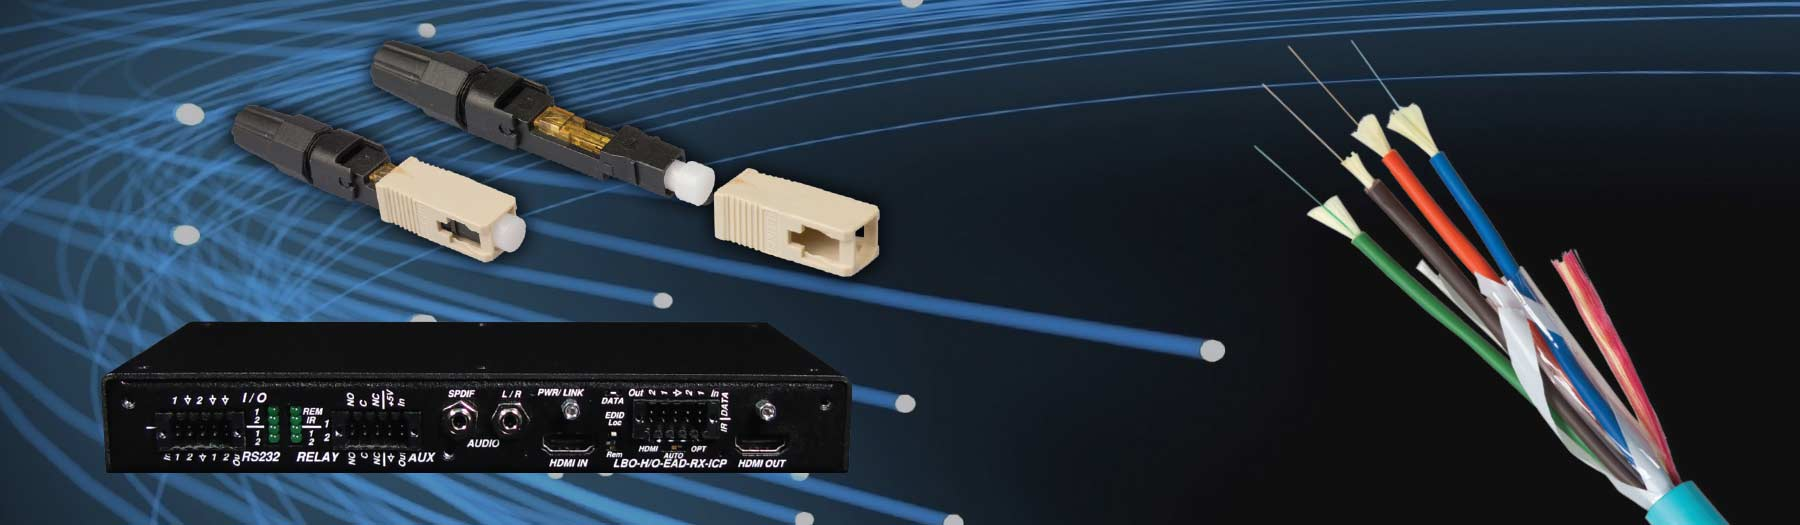 Liberty offers complete, affordable fiber optic solutions for your AV infrastructure